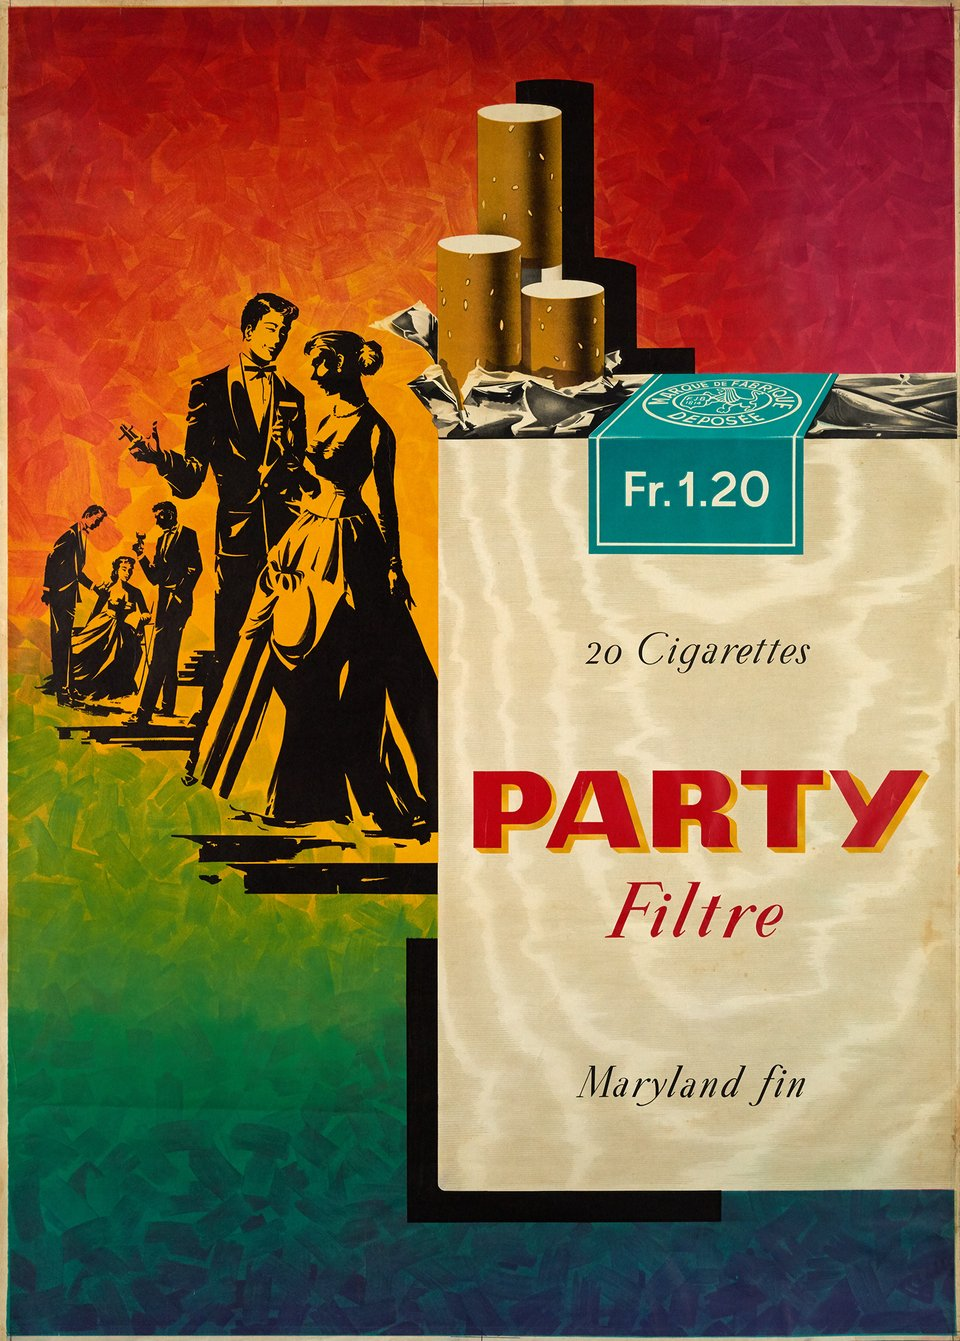 Party Filtre, Maryland fin – Affiche ancienne – Pierre GILLIOZ – 1953